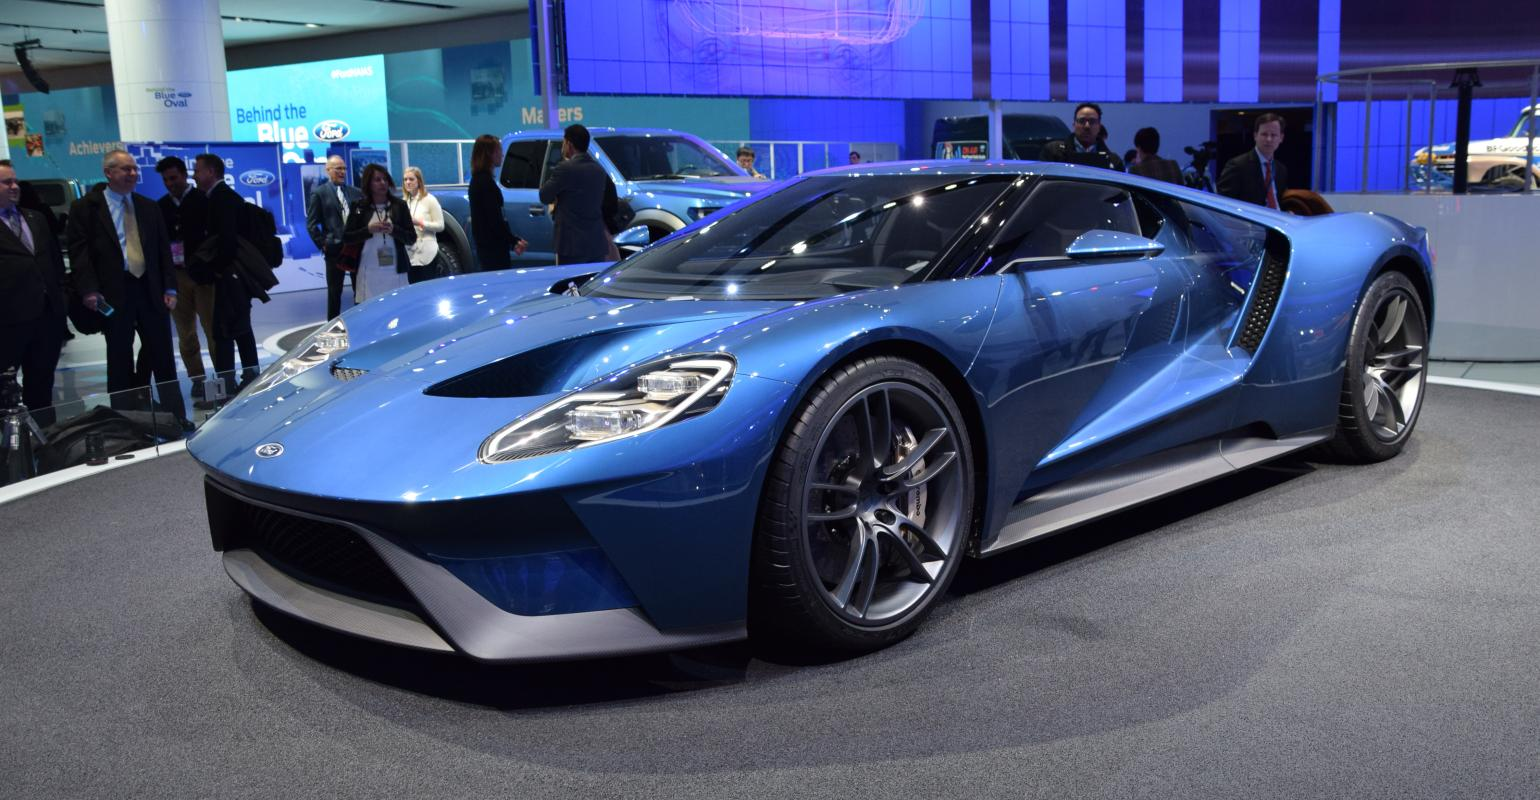 Corningrsquos Gorilla Glass Already Used In Ford Gt Key Material In New Auto Glass